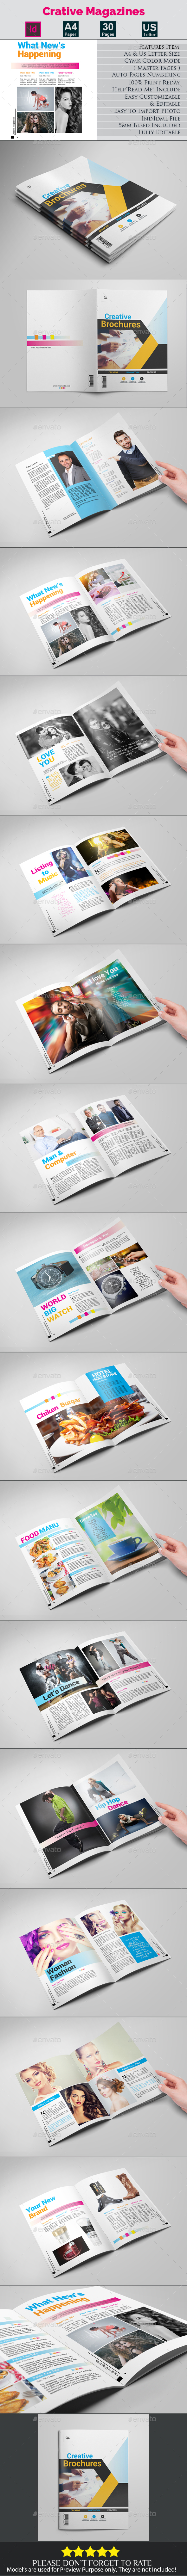 Crative Magazines - Magazines Print Templates